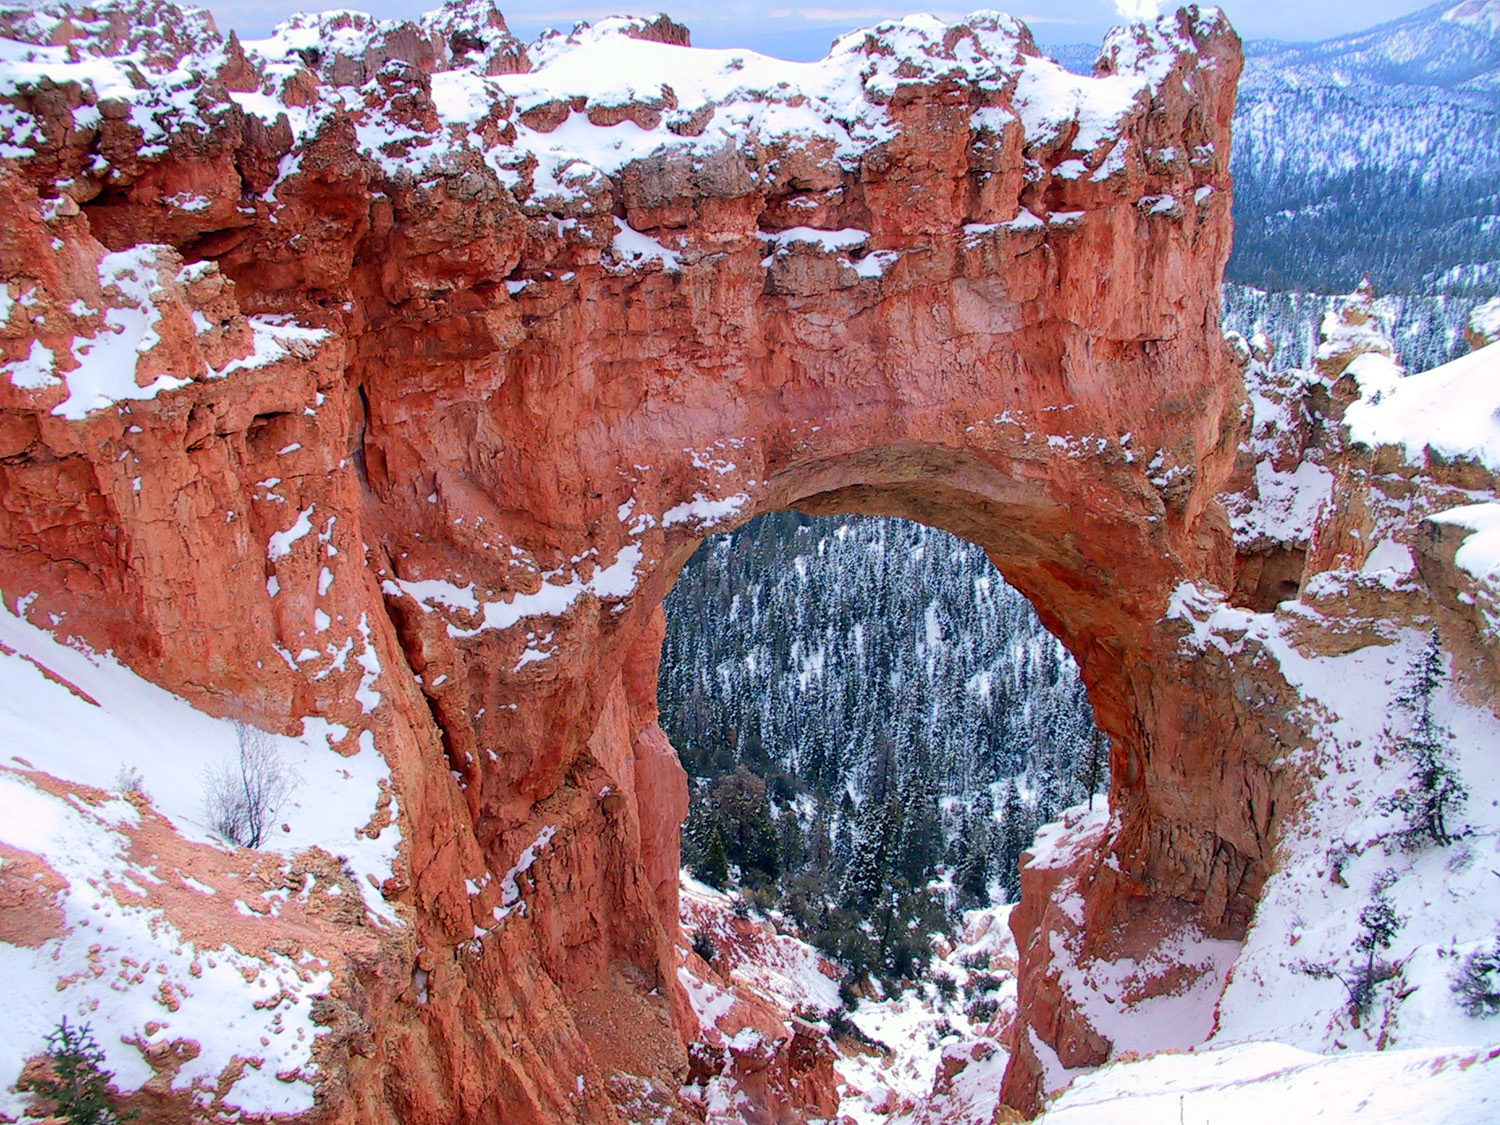 Natural bridge in Bryce Canyon National Park.